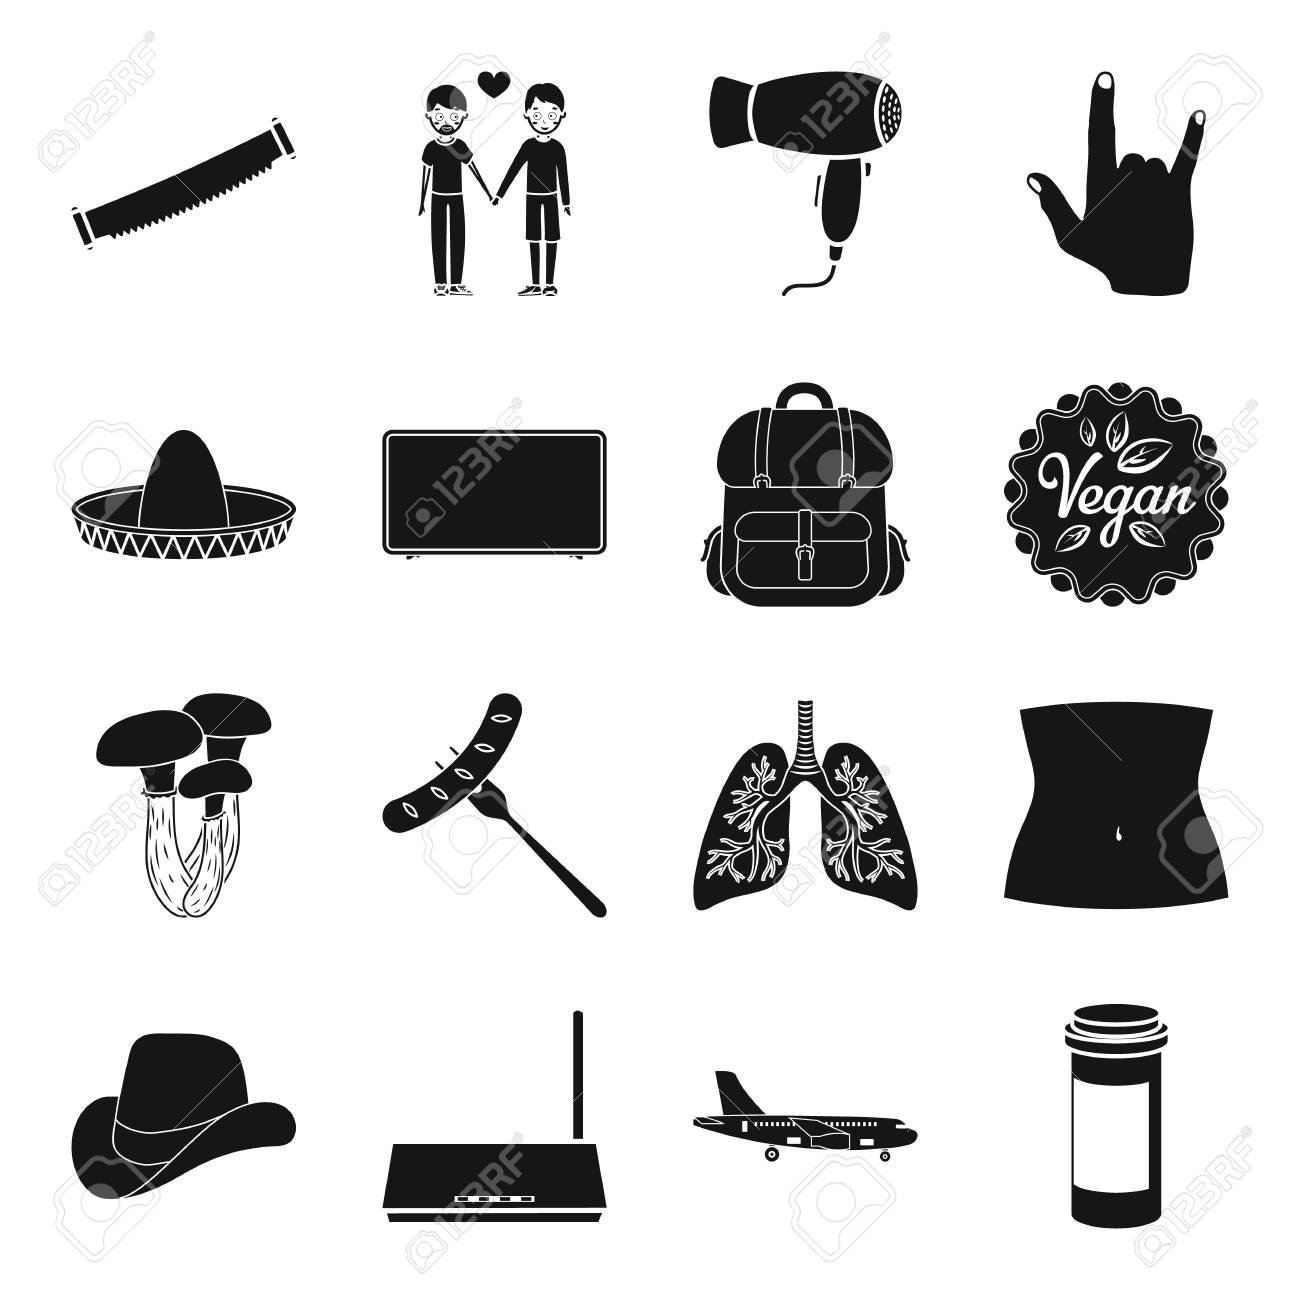 Medicine, computer, gay and other web icon in black style. woodworking,  Equipment